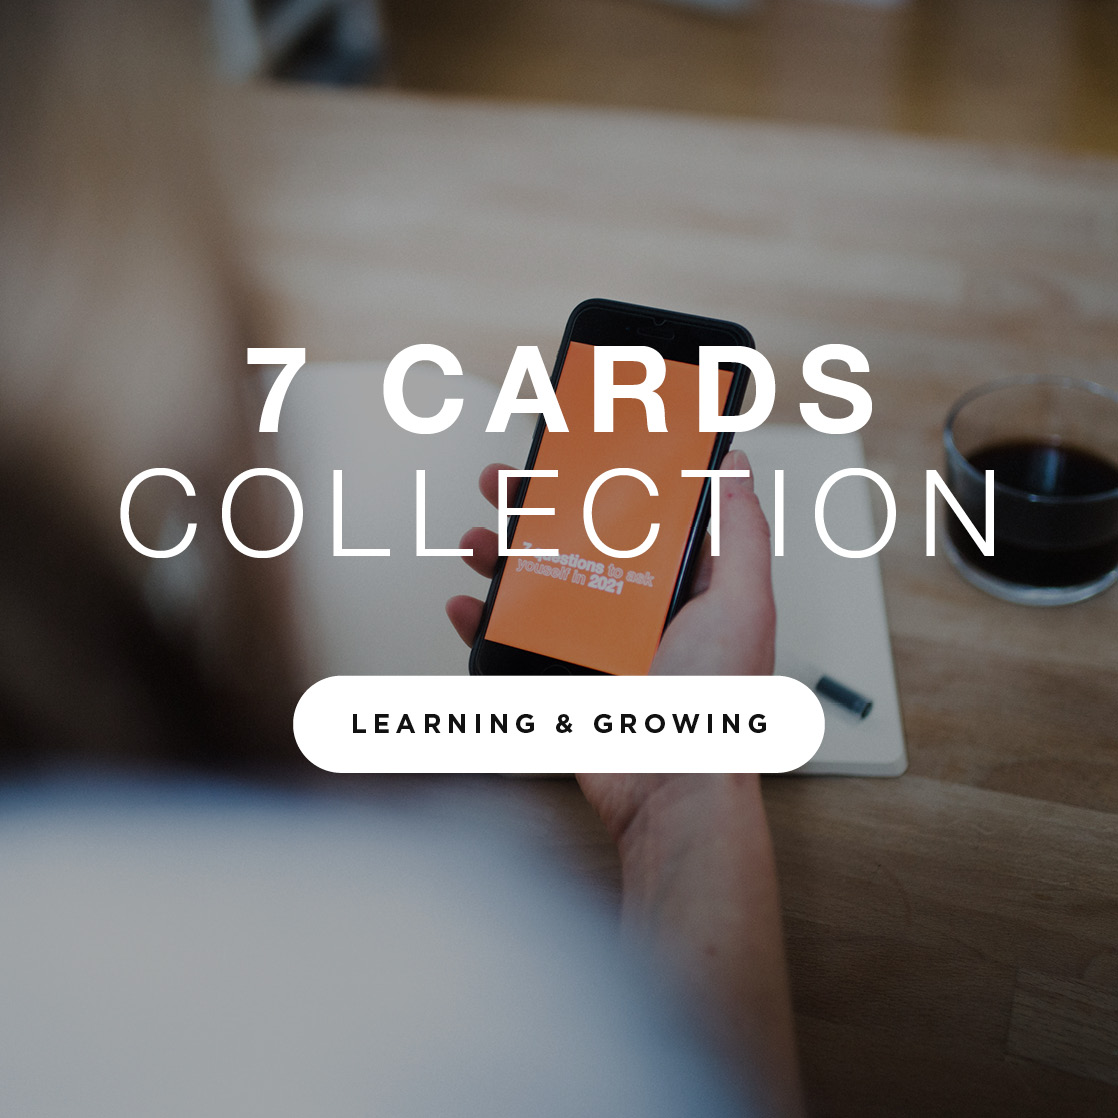 7 Cards Collection